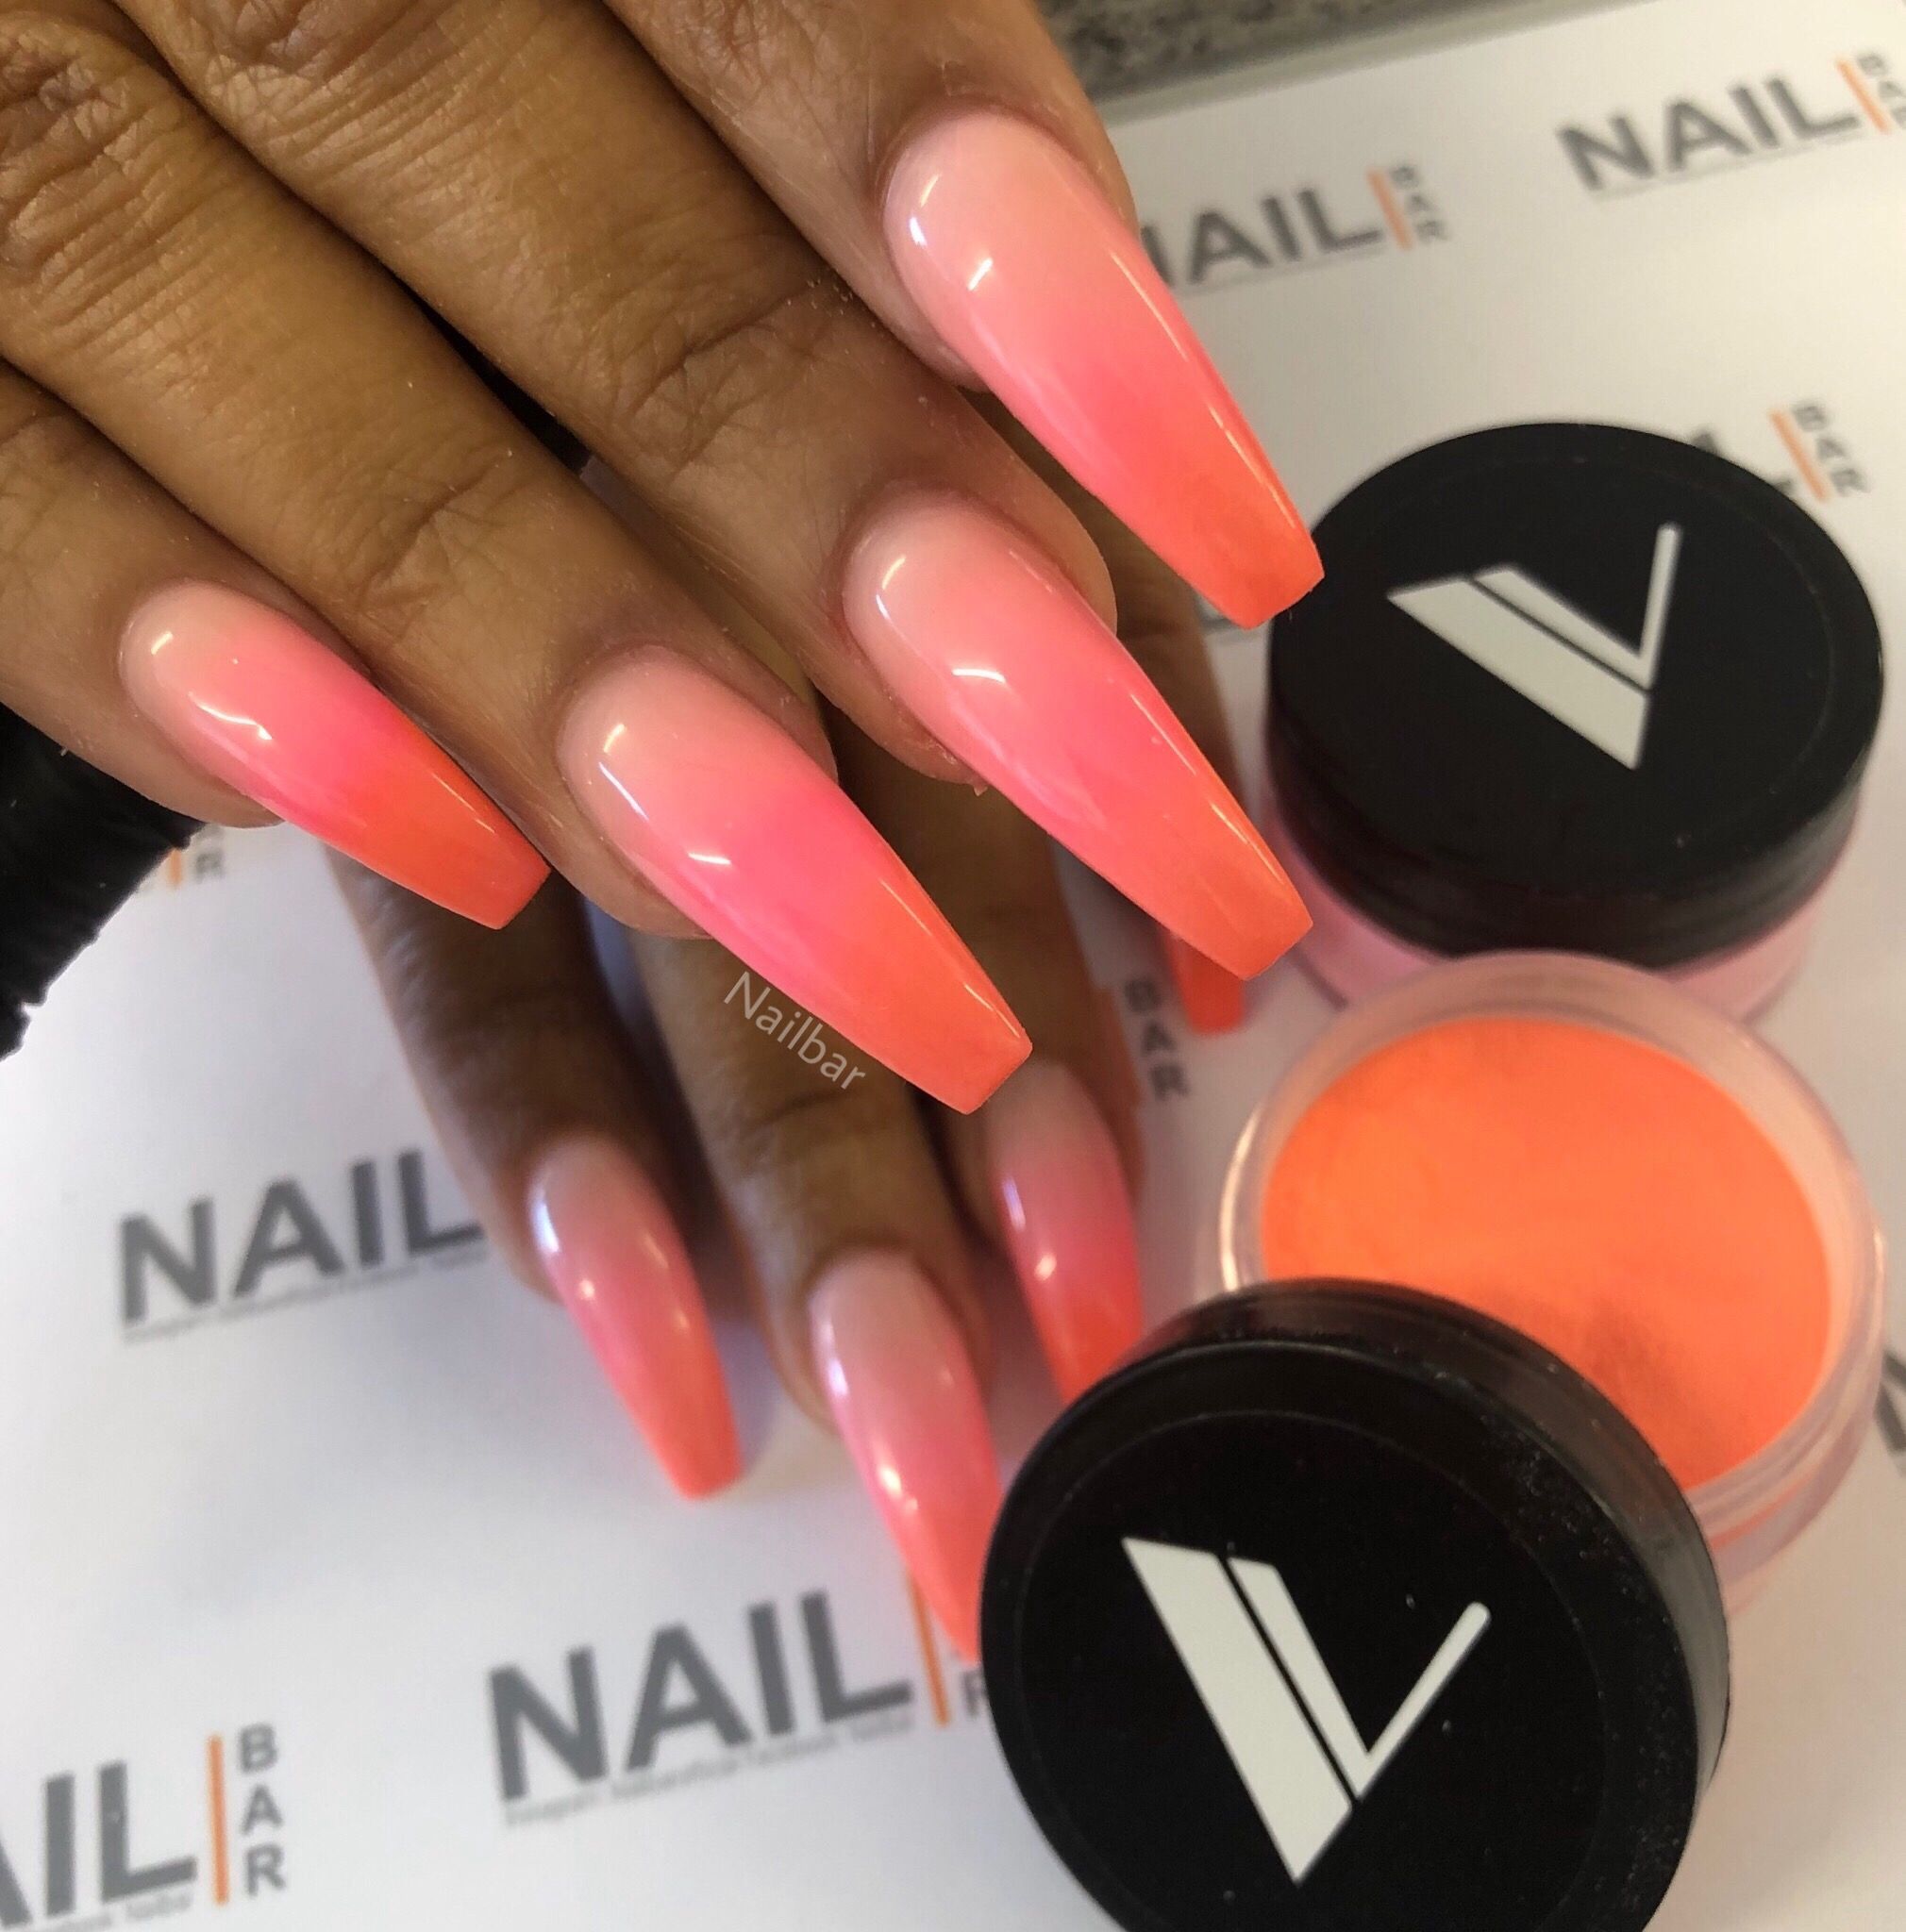 Pin by amazing offers network on Nail colors Nail colors